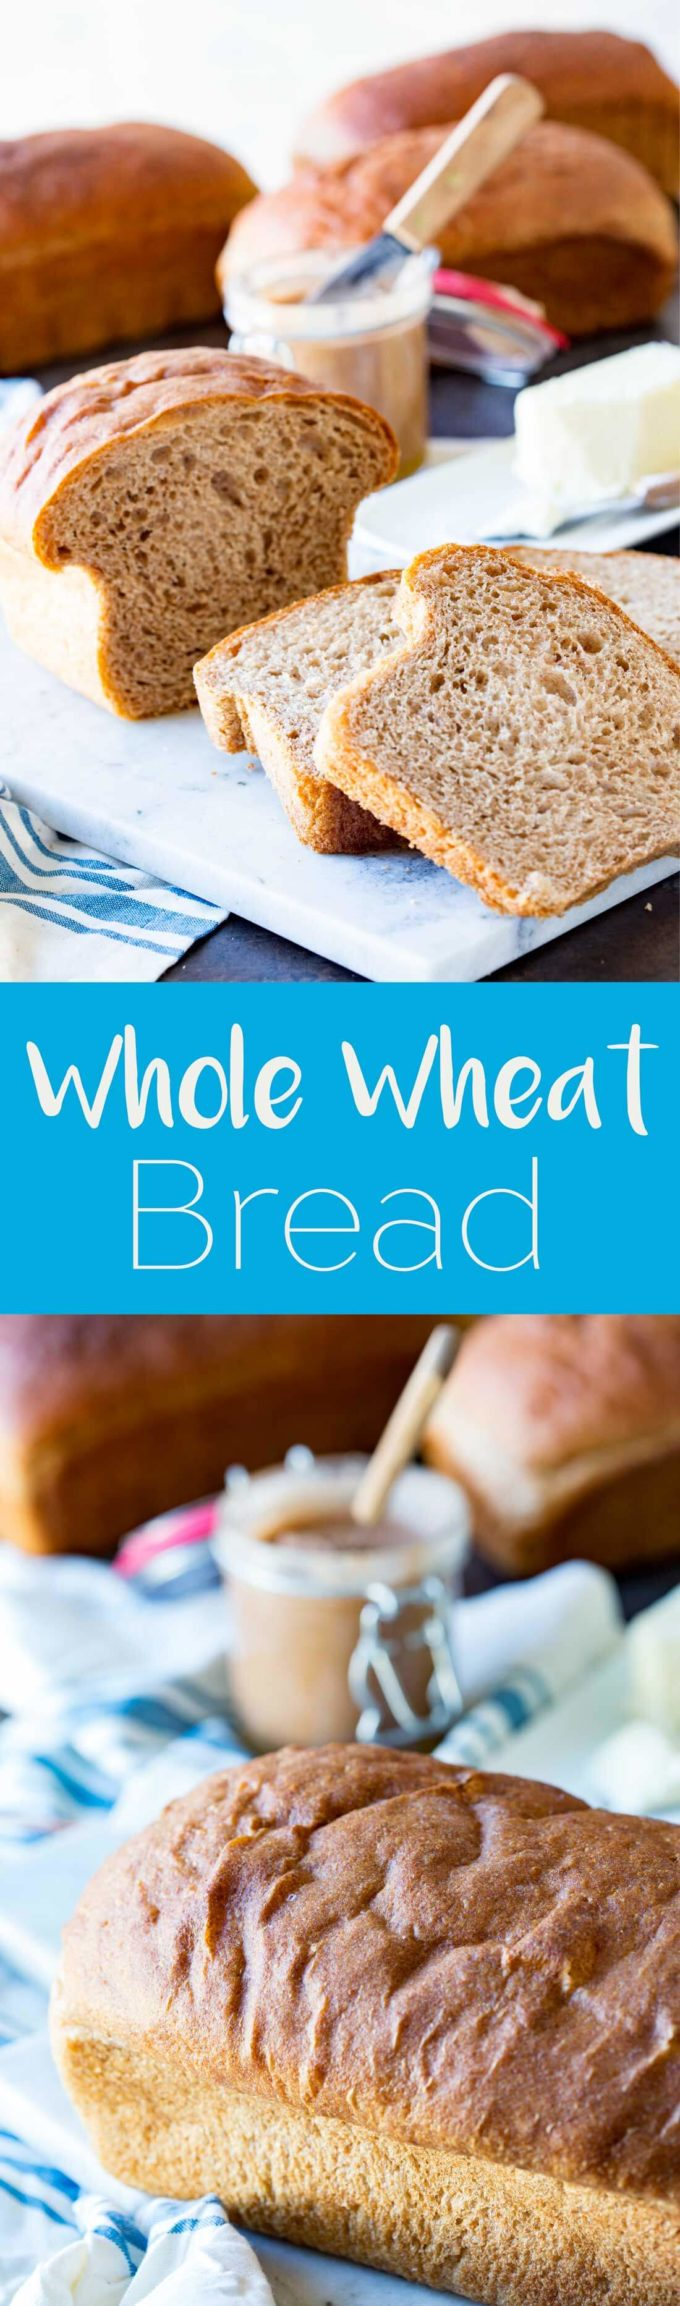 Honey Whole Wheat bread made from scratch for a hearty, delicious loaf